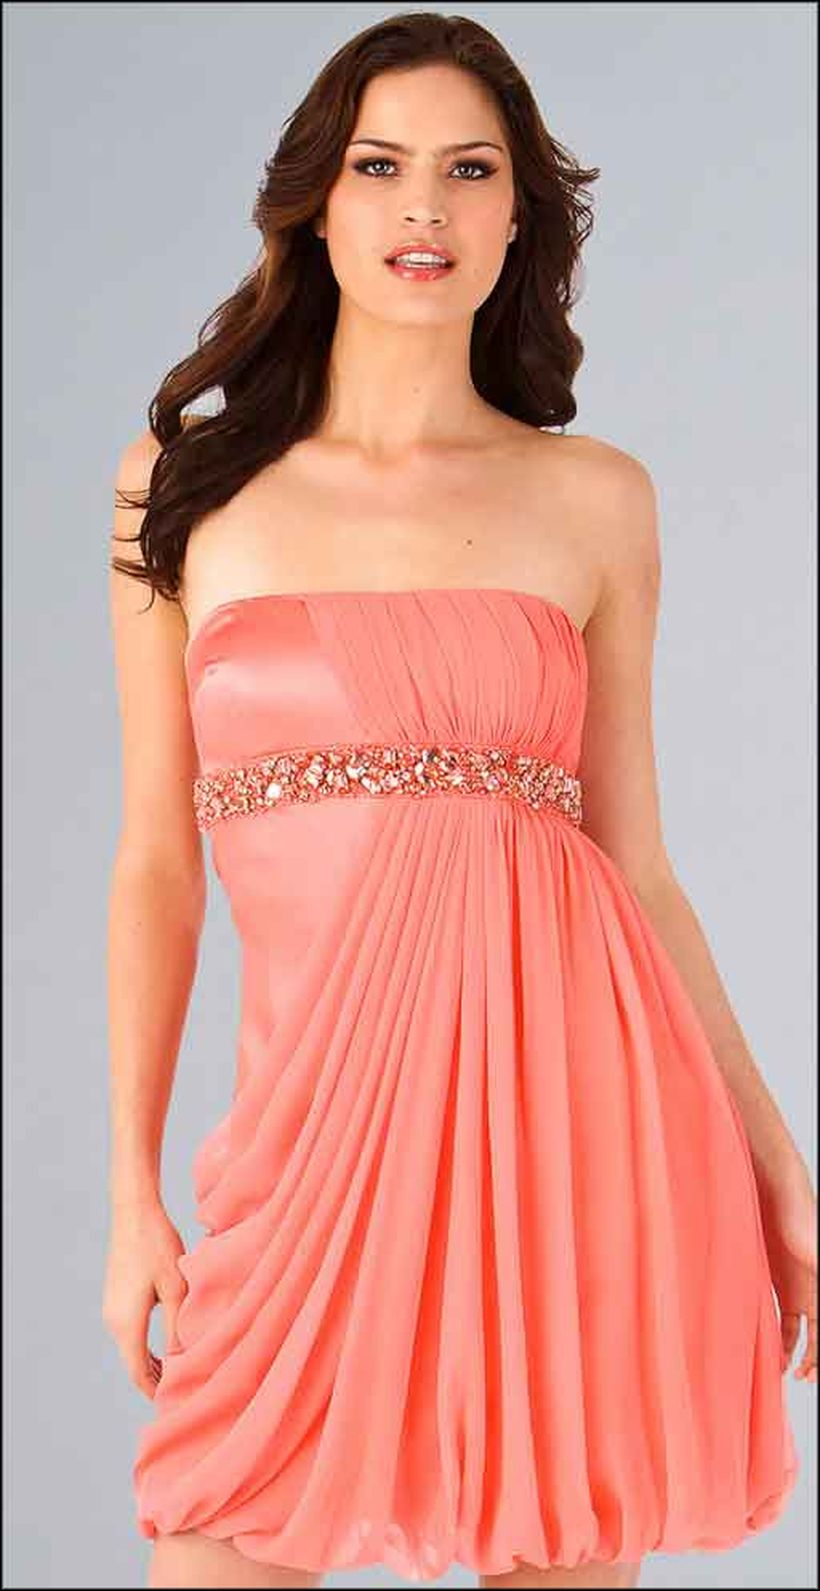 Awesome teens short dresses ideas for graduation outfits 182